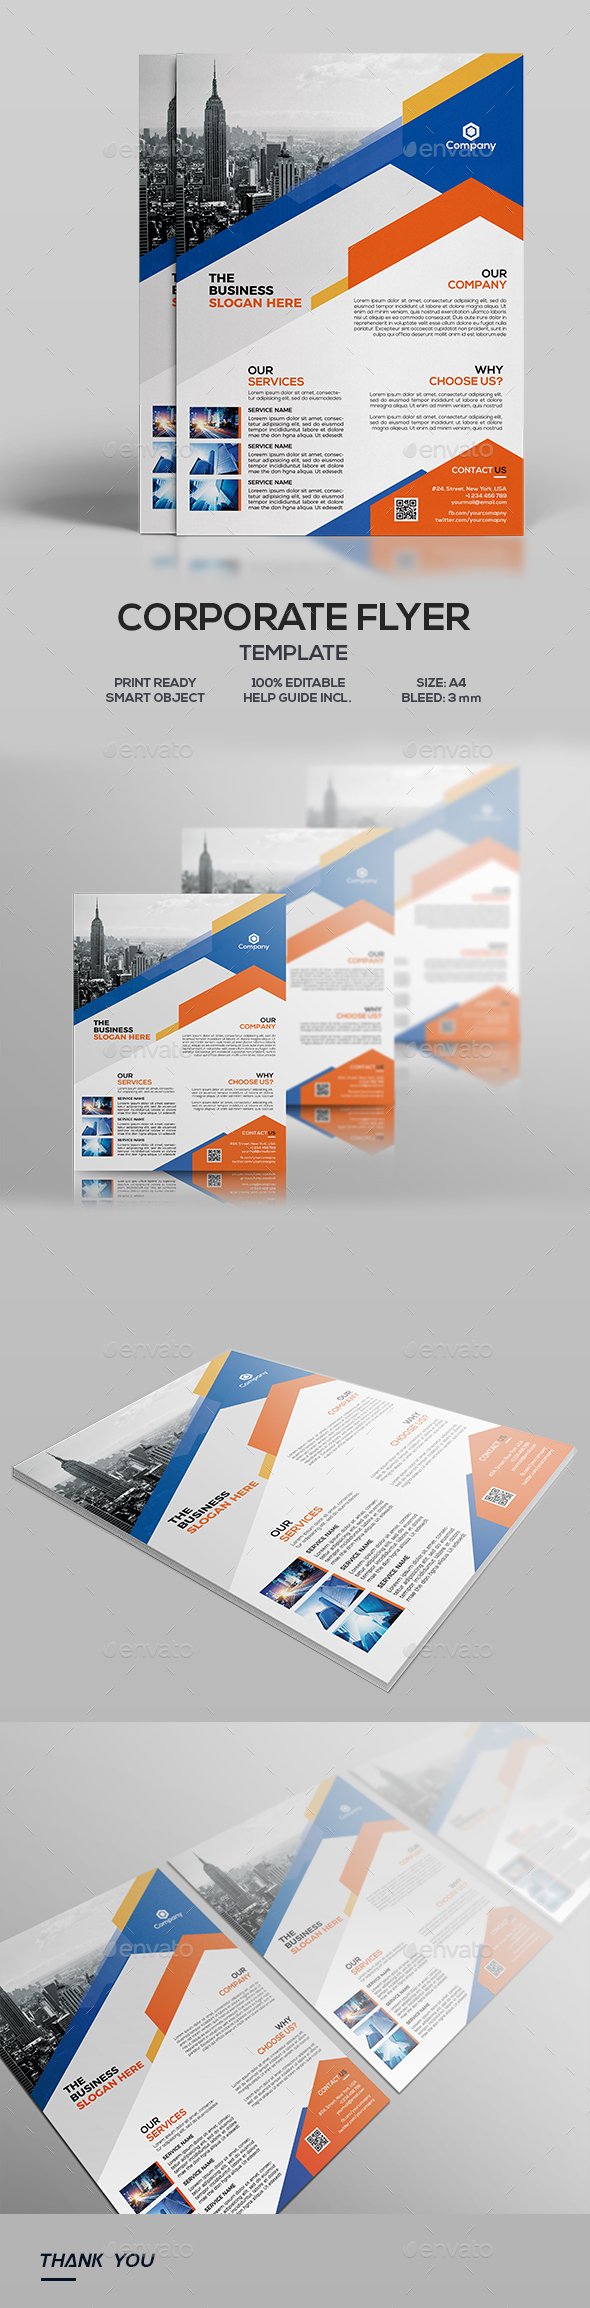 corporate flyer download